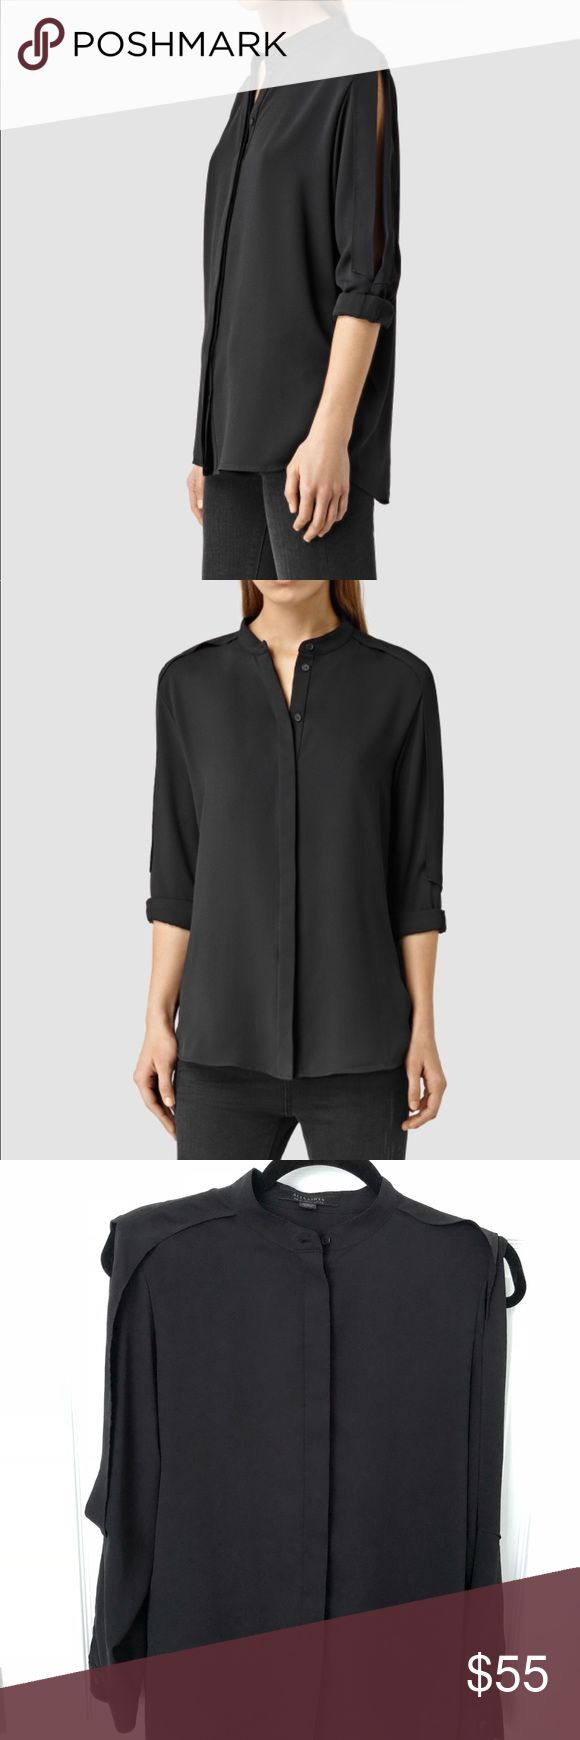 Allsaints Alvey shirt Barely worn, like new. Slits on sides of sleeves detail. Sleeves can be rolled up or worn long. All Saints Tops Blouses